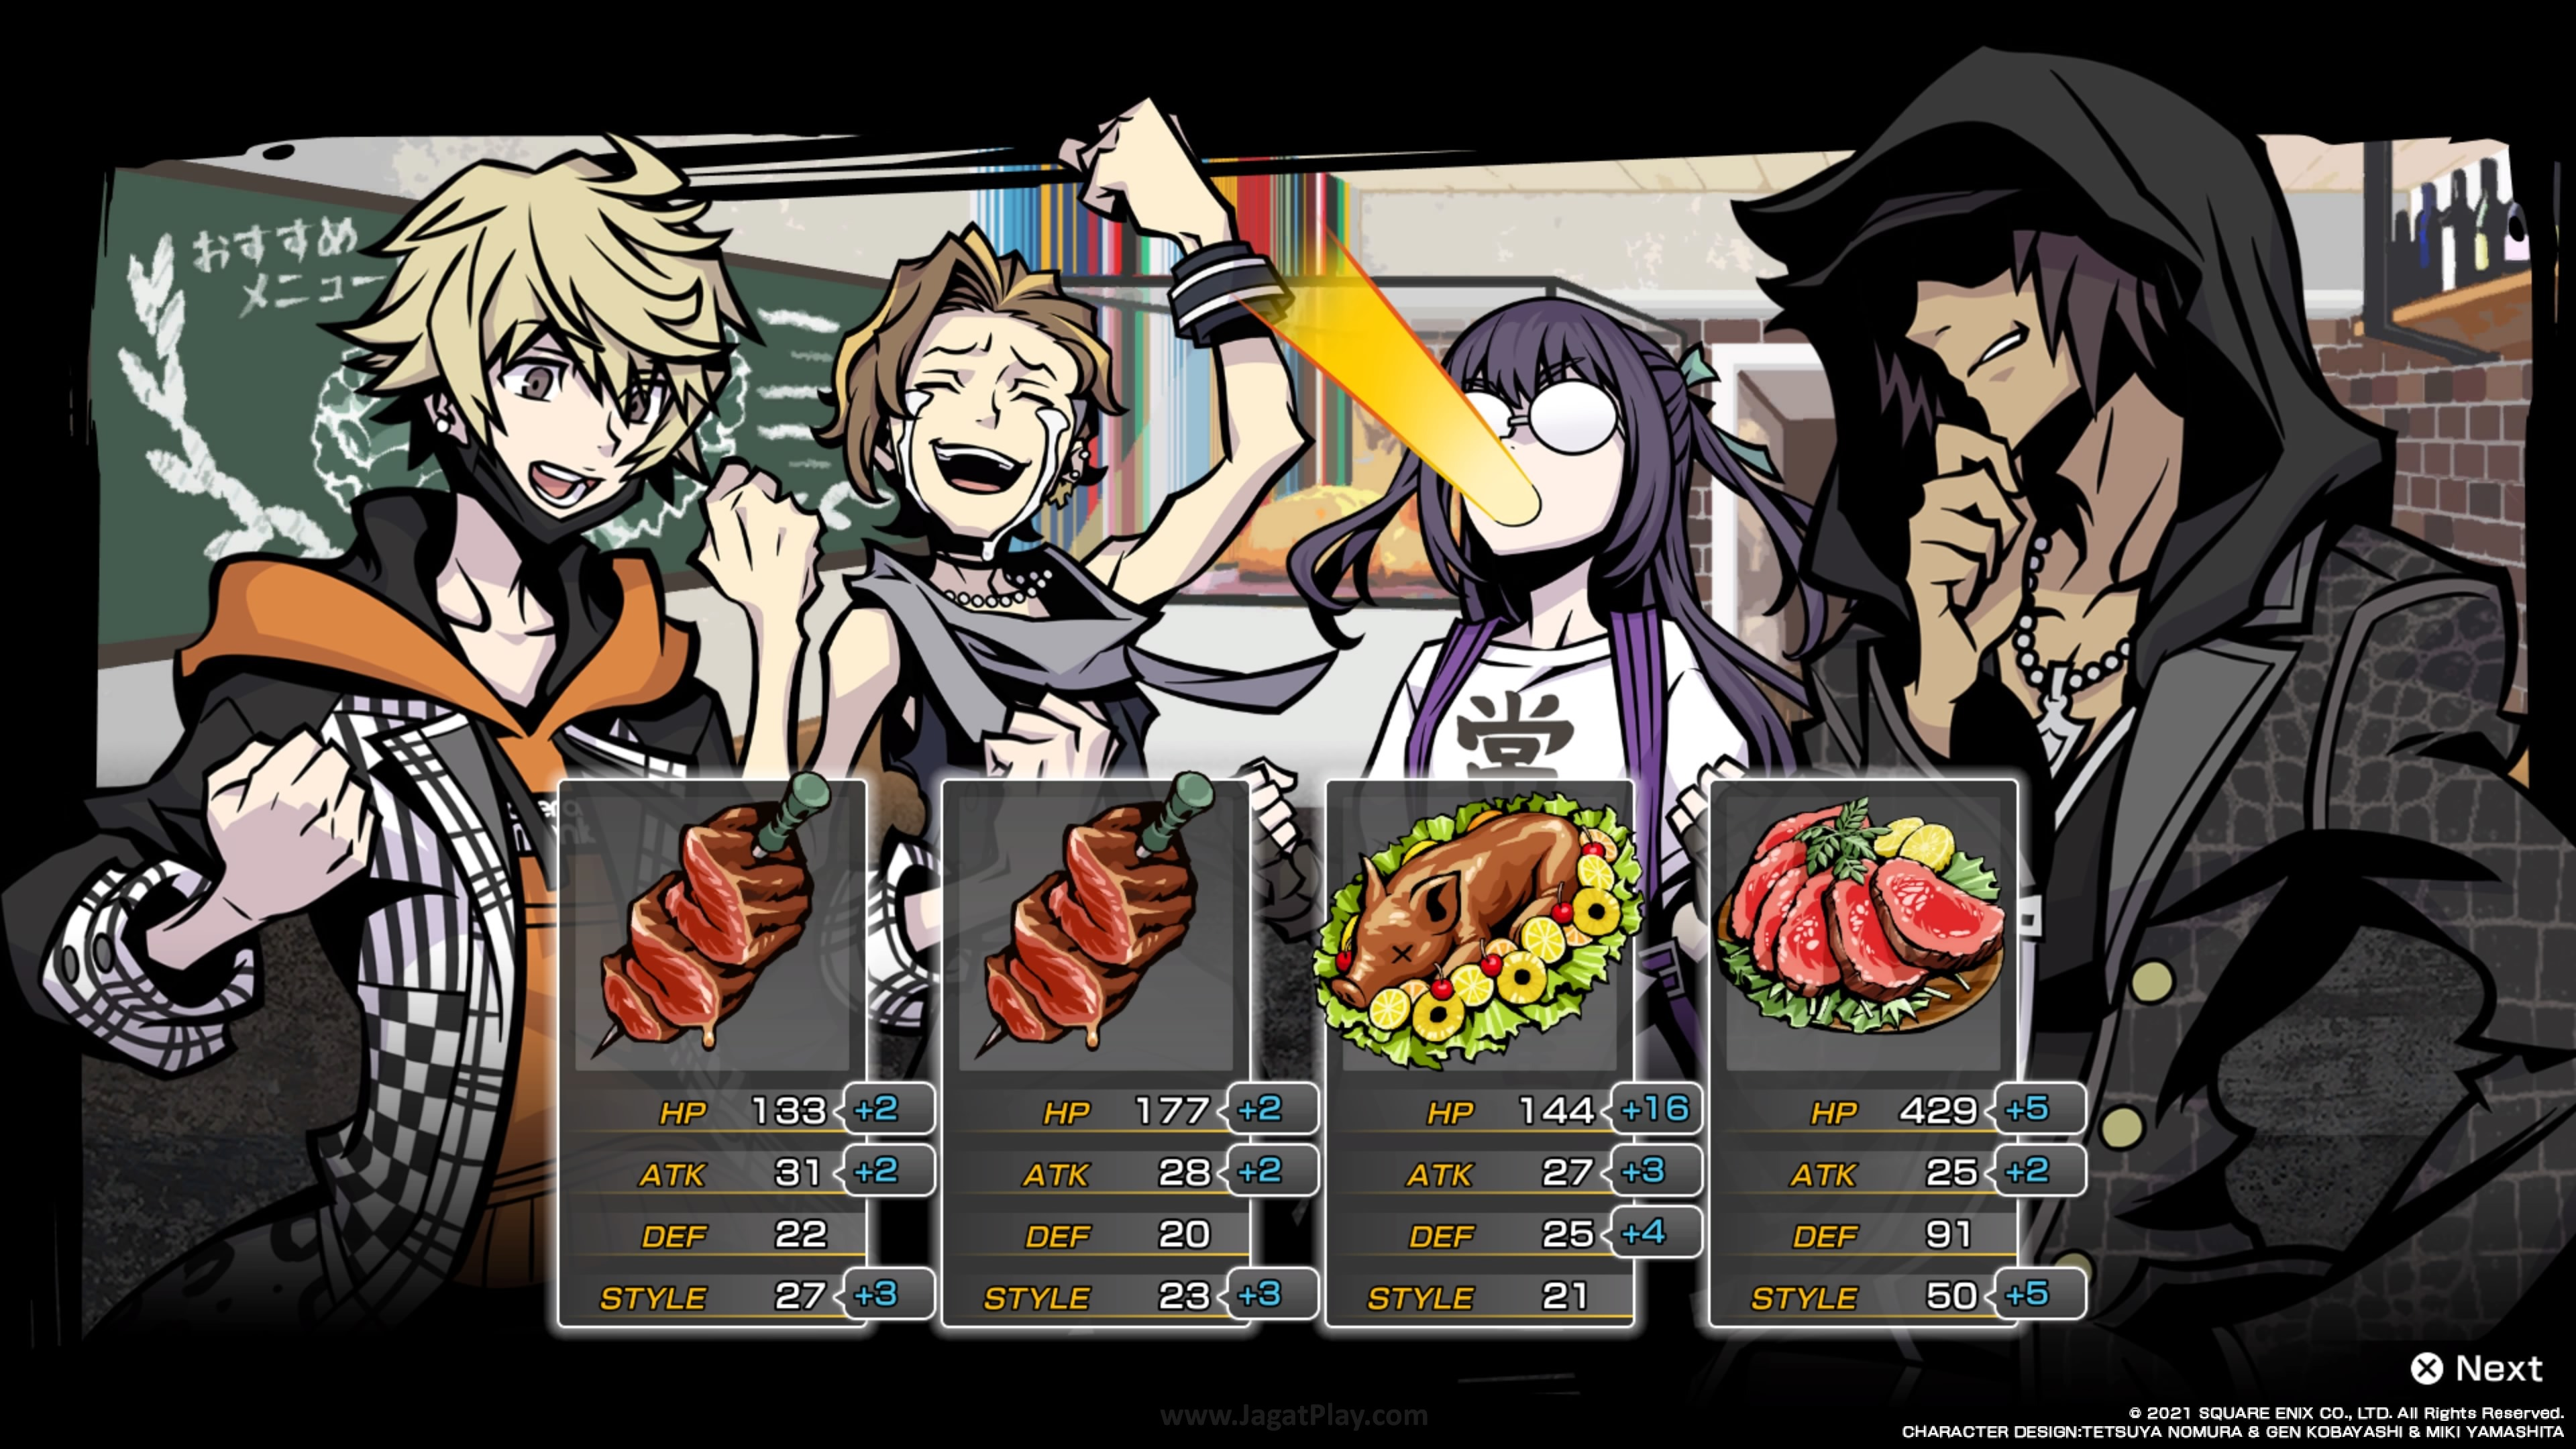 NEO The World Ends with You jagatplay part 1 47